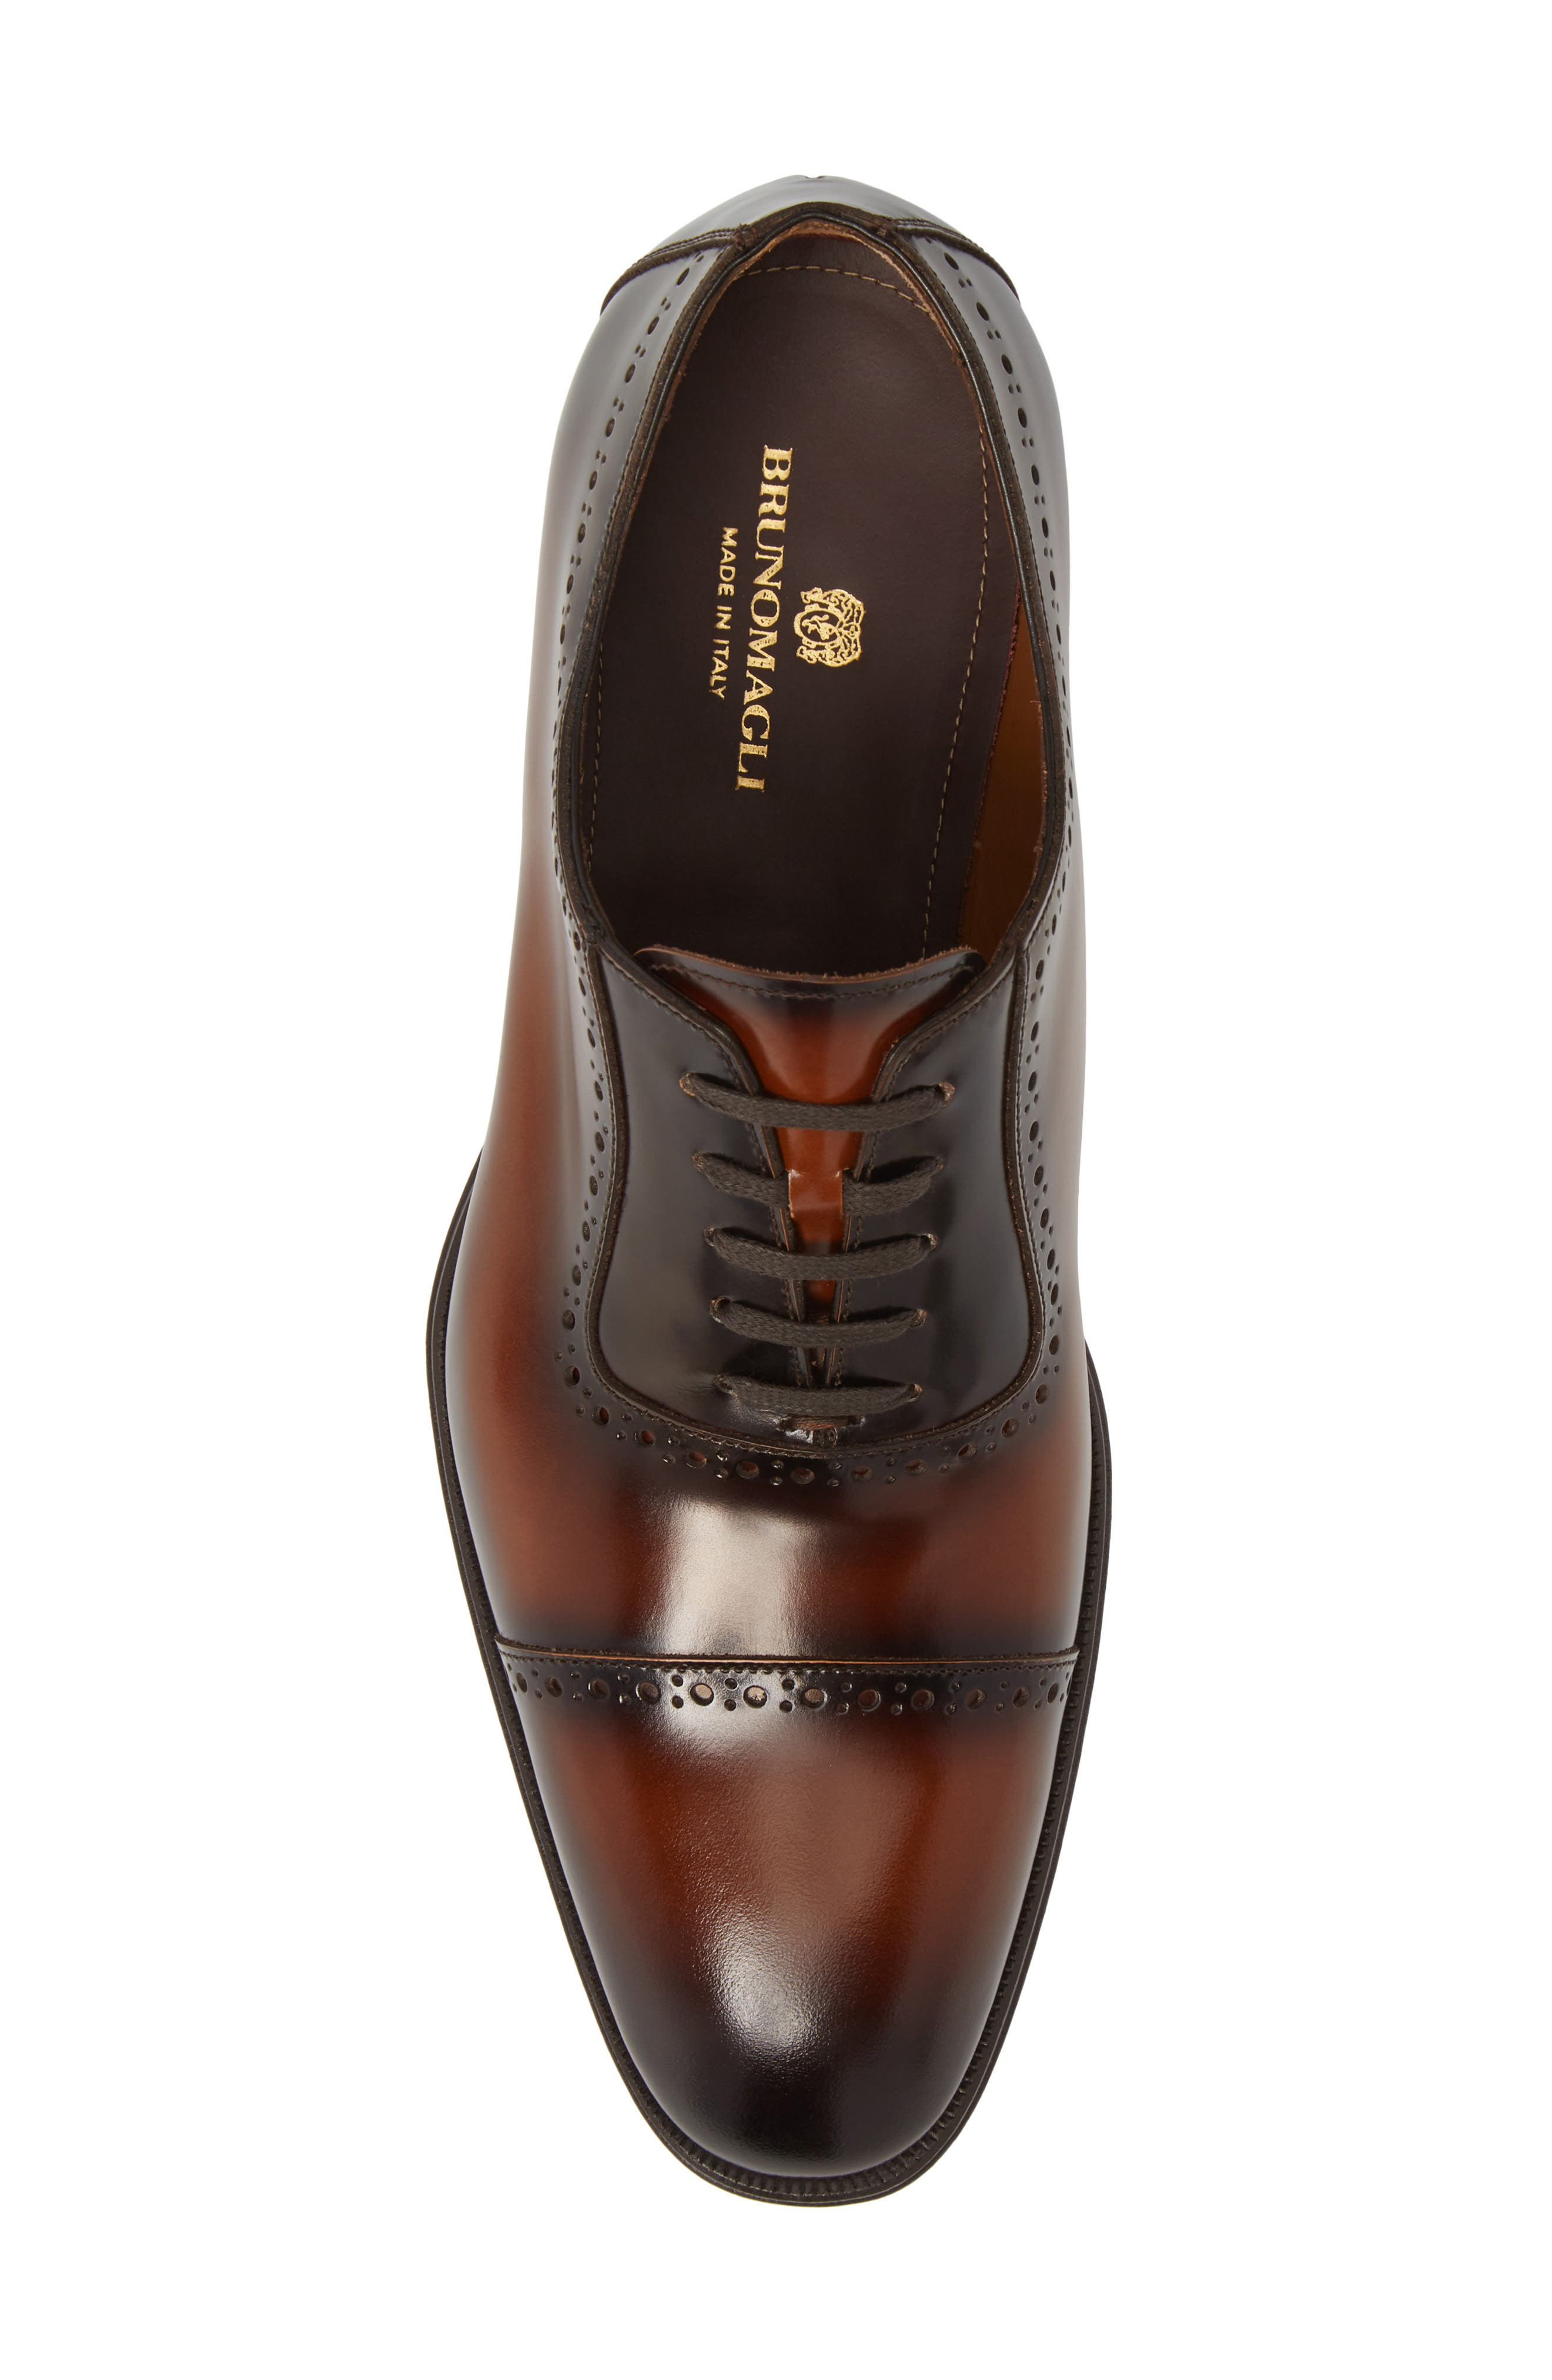 BRUNO MAGLI, Lucca Cap Toe Oxford, Alternate thumbnail 5, color, COGNAC